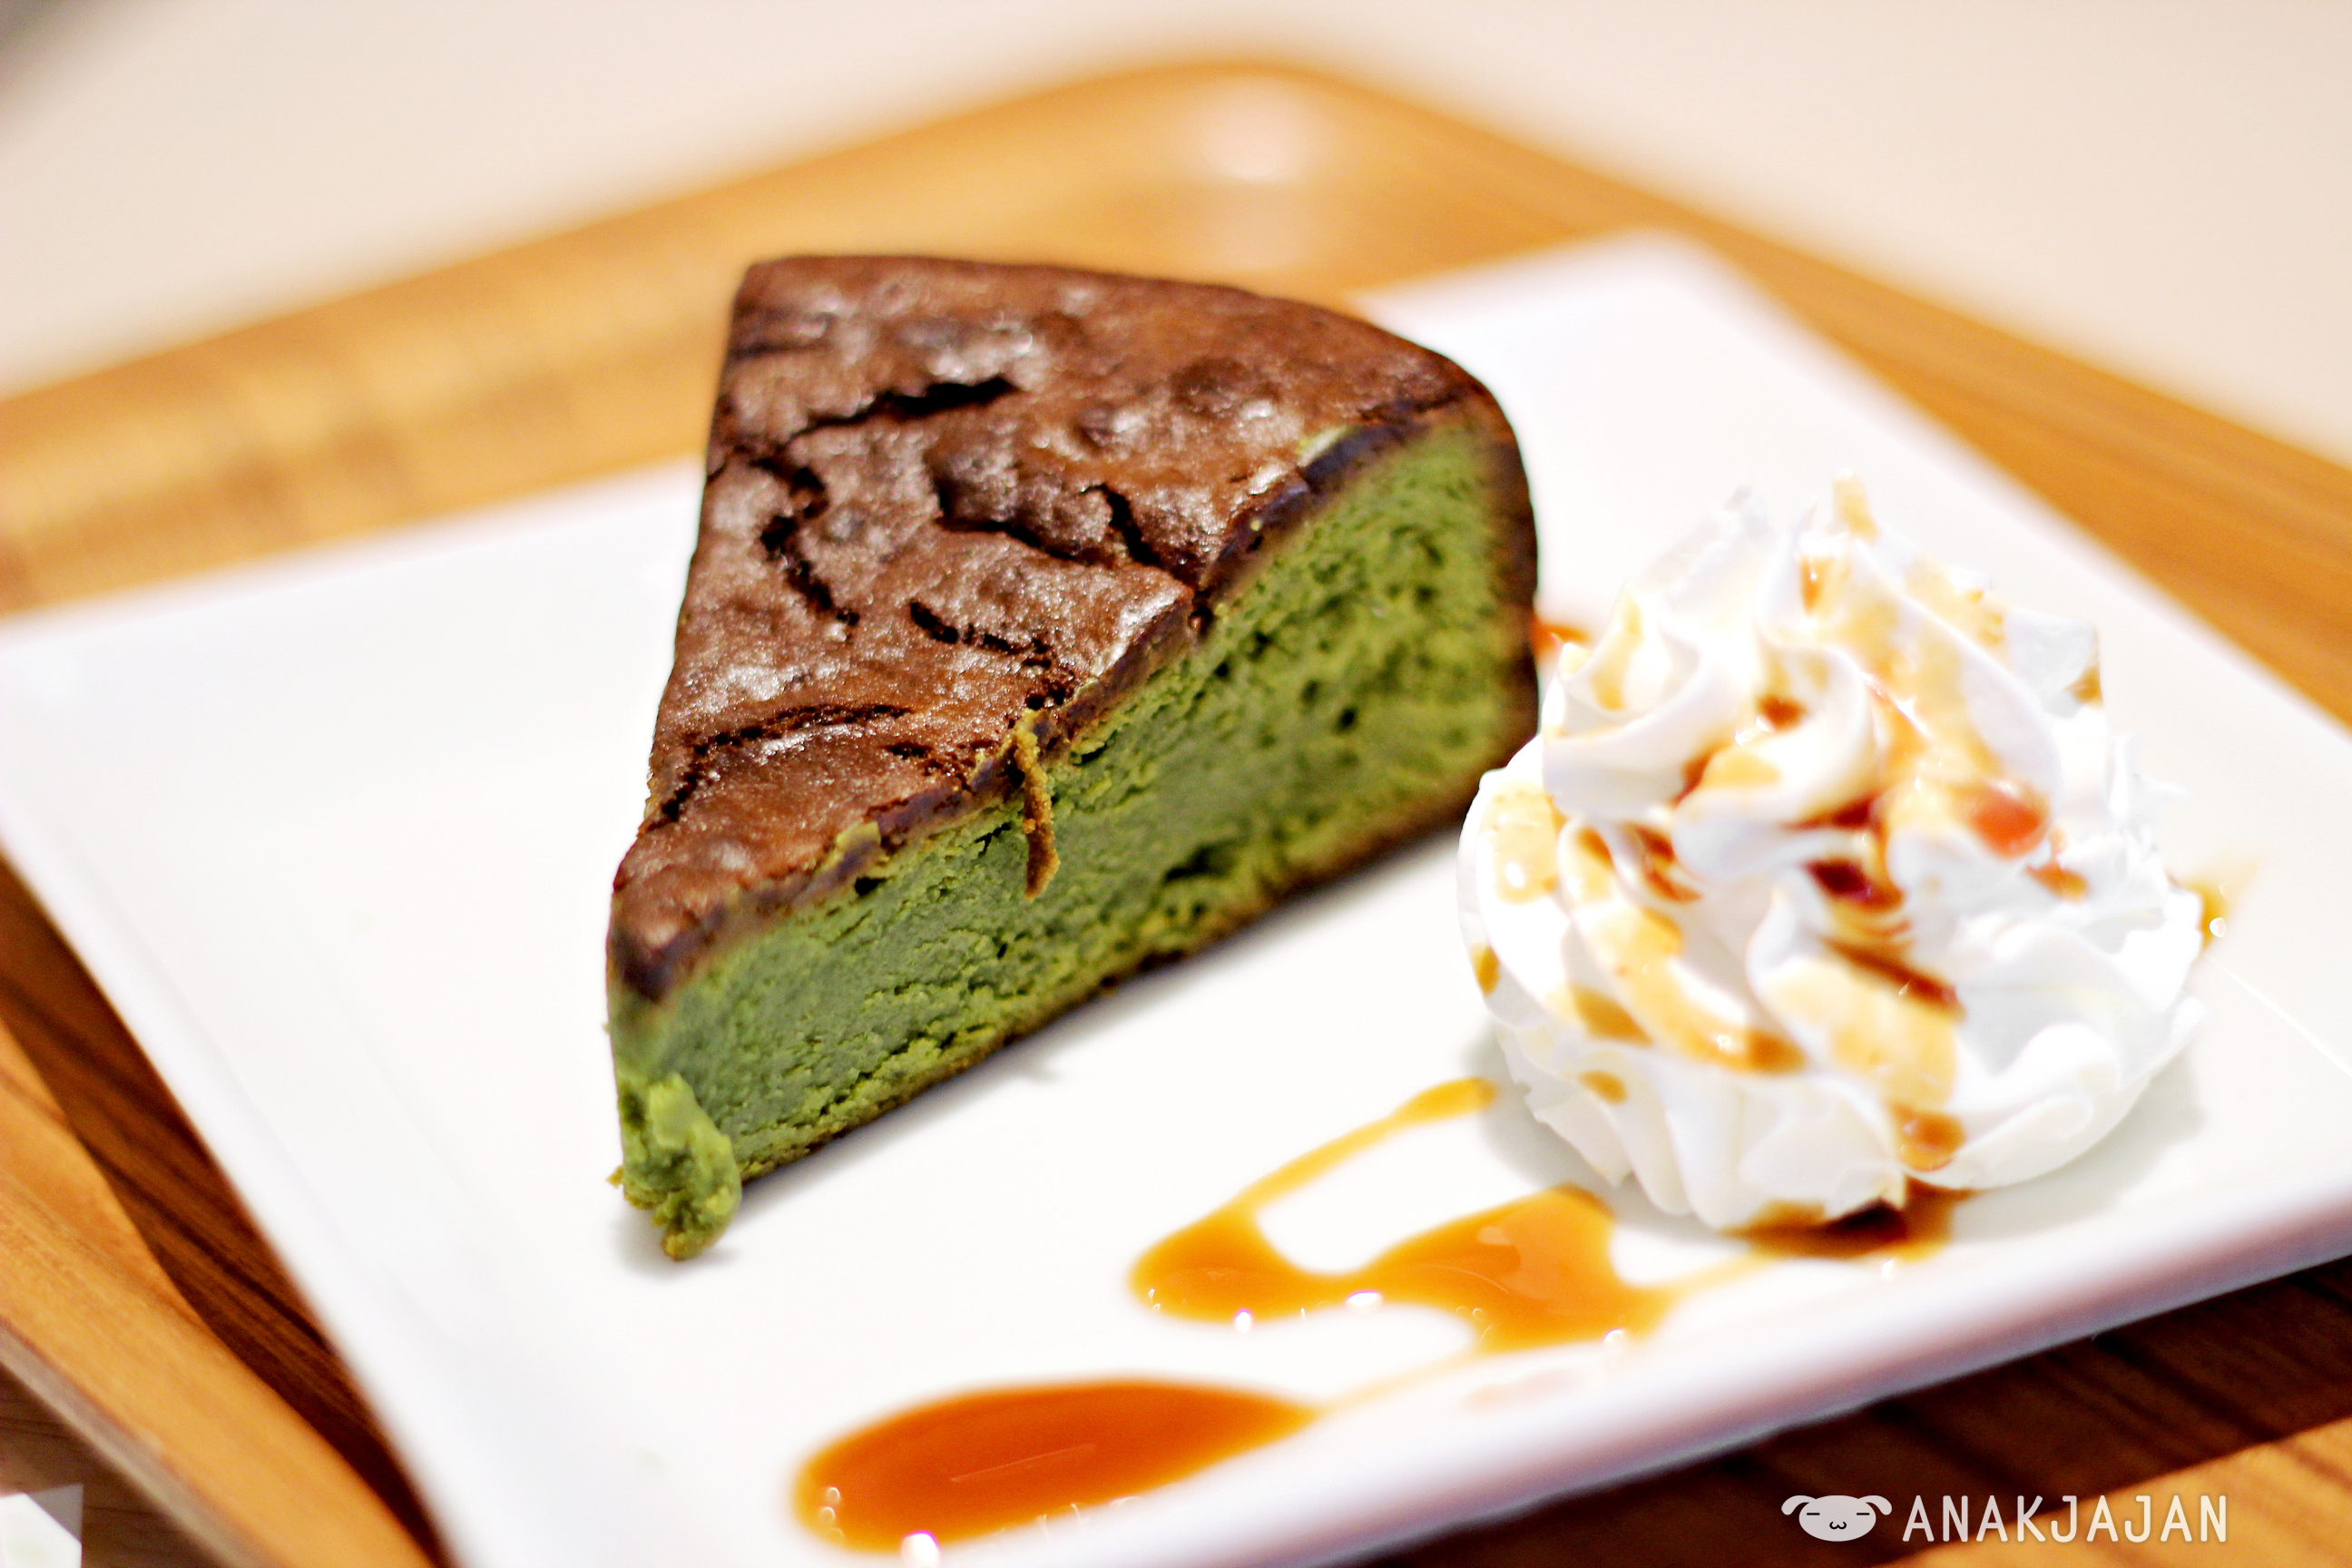 Green Tea Cafe In New York